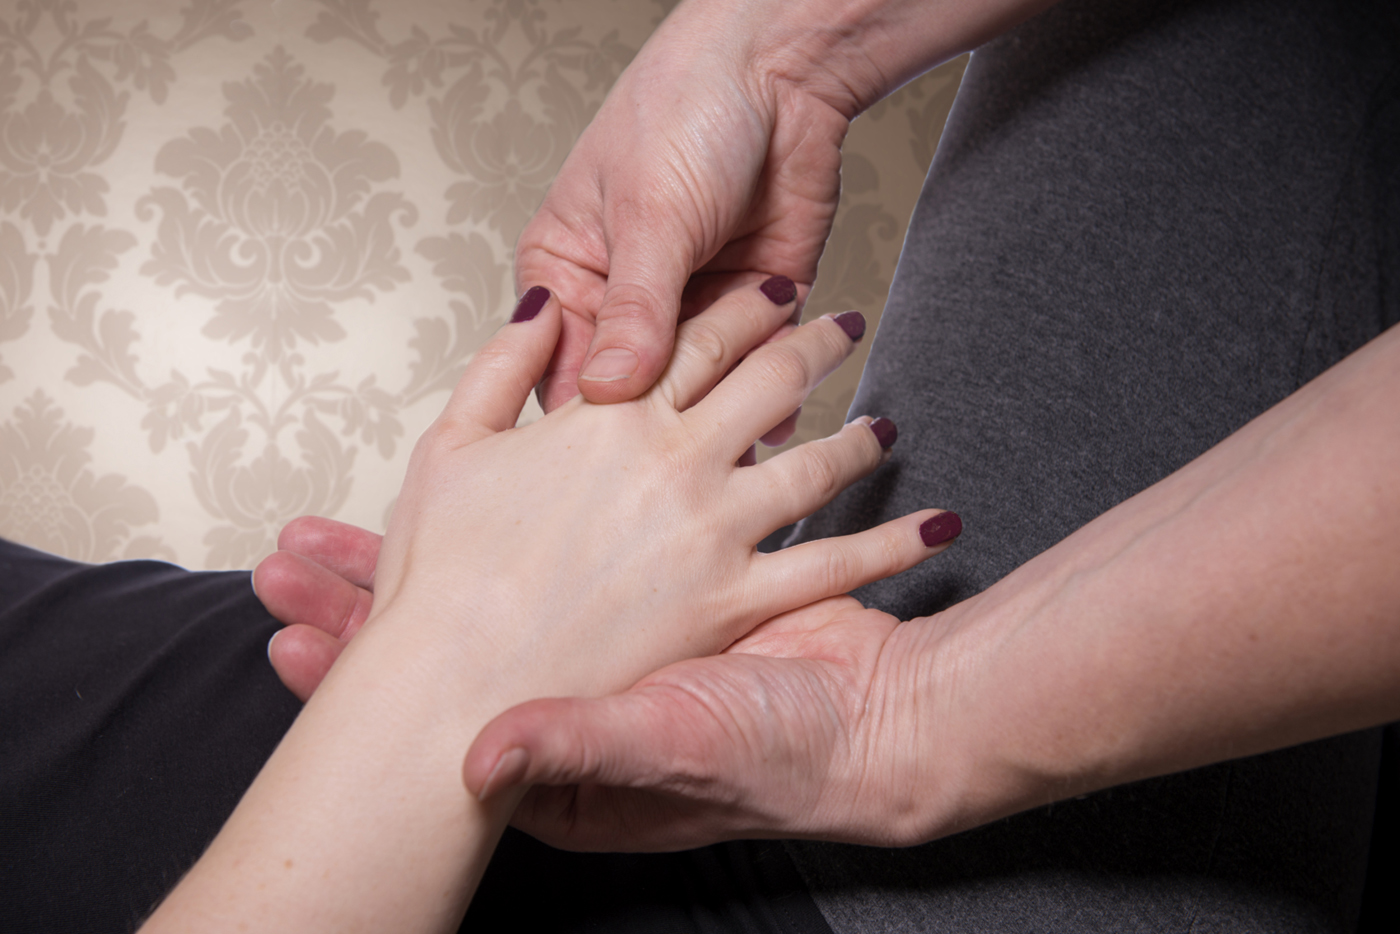 The simplest gesture such as touching a hand can communicate a thousand words…